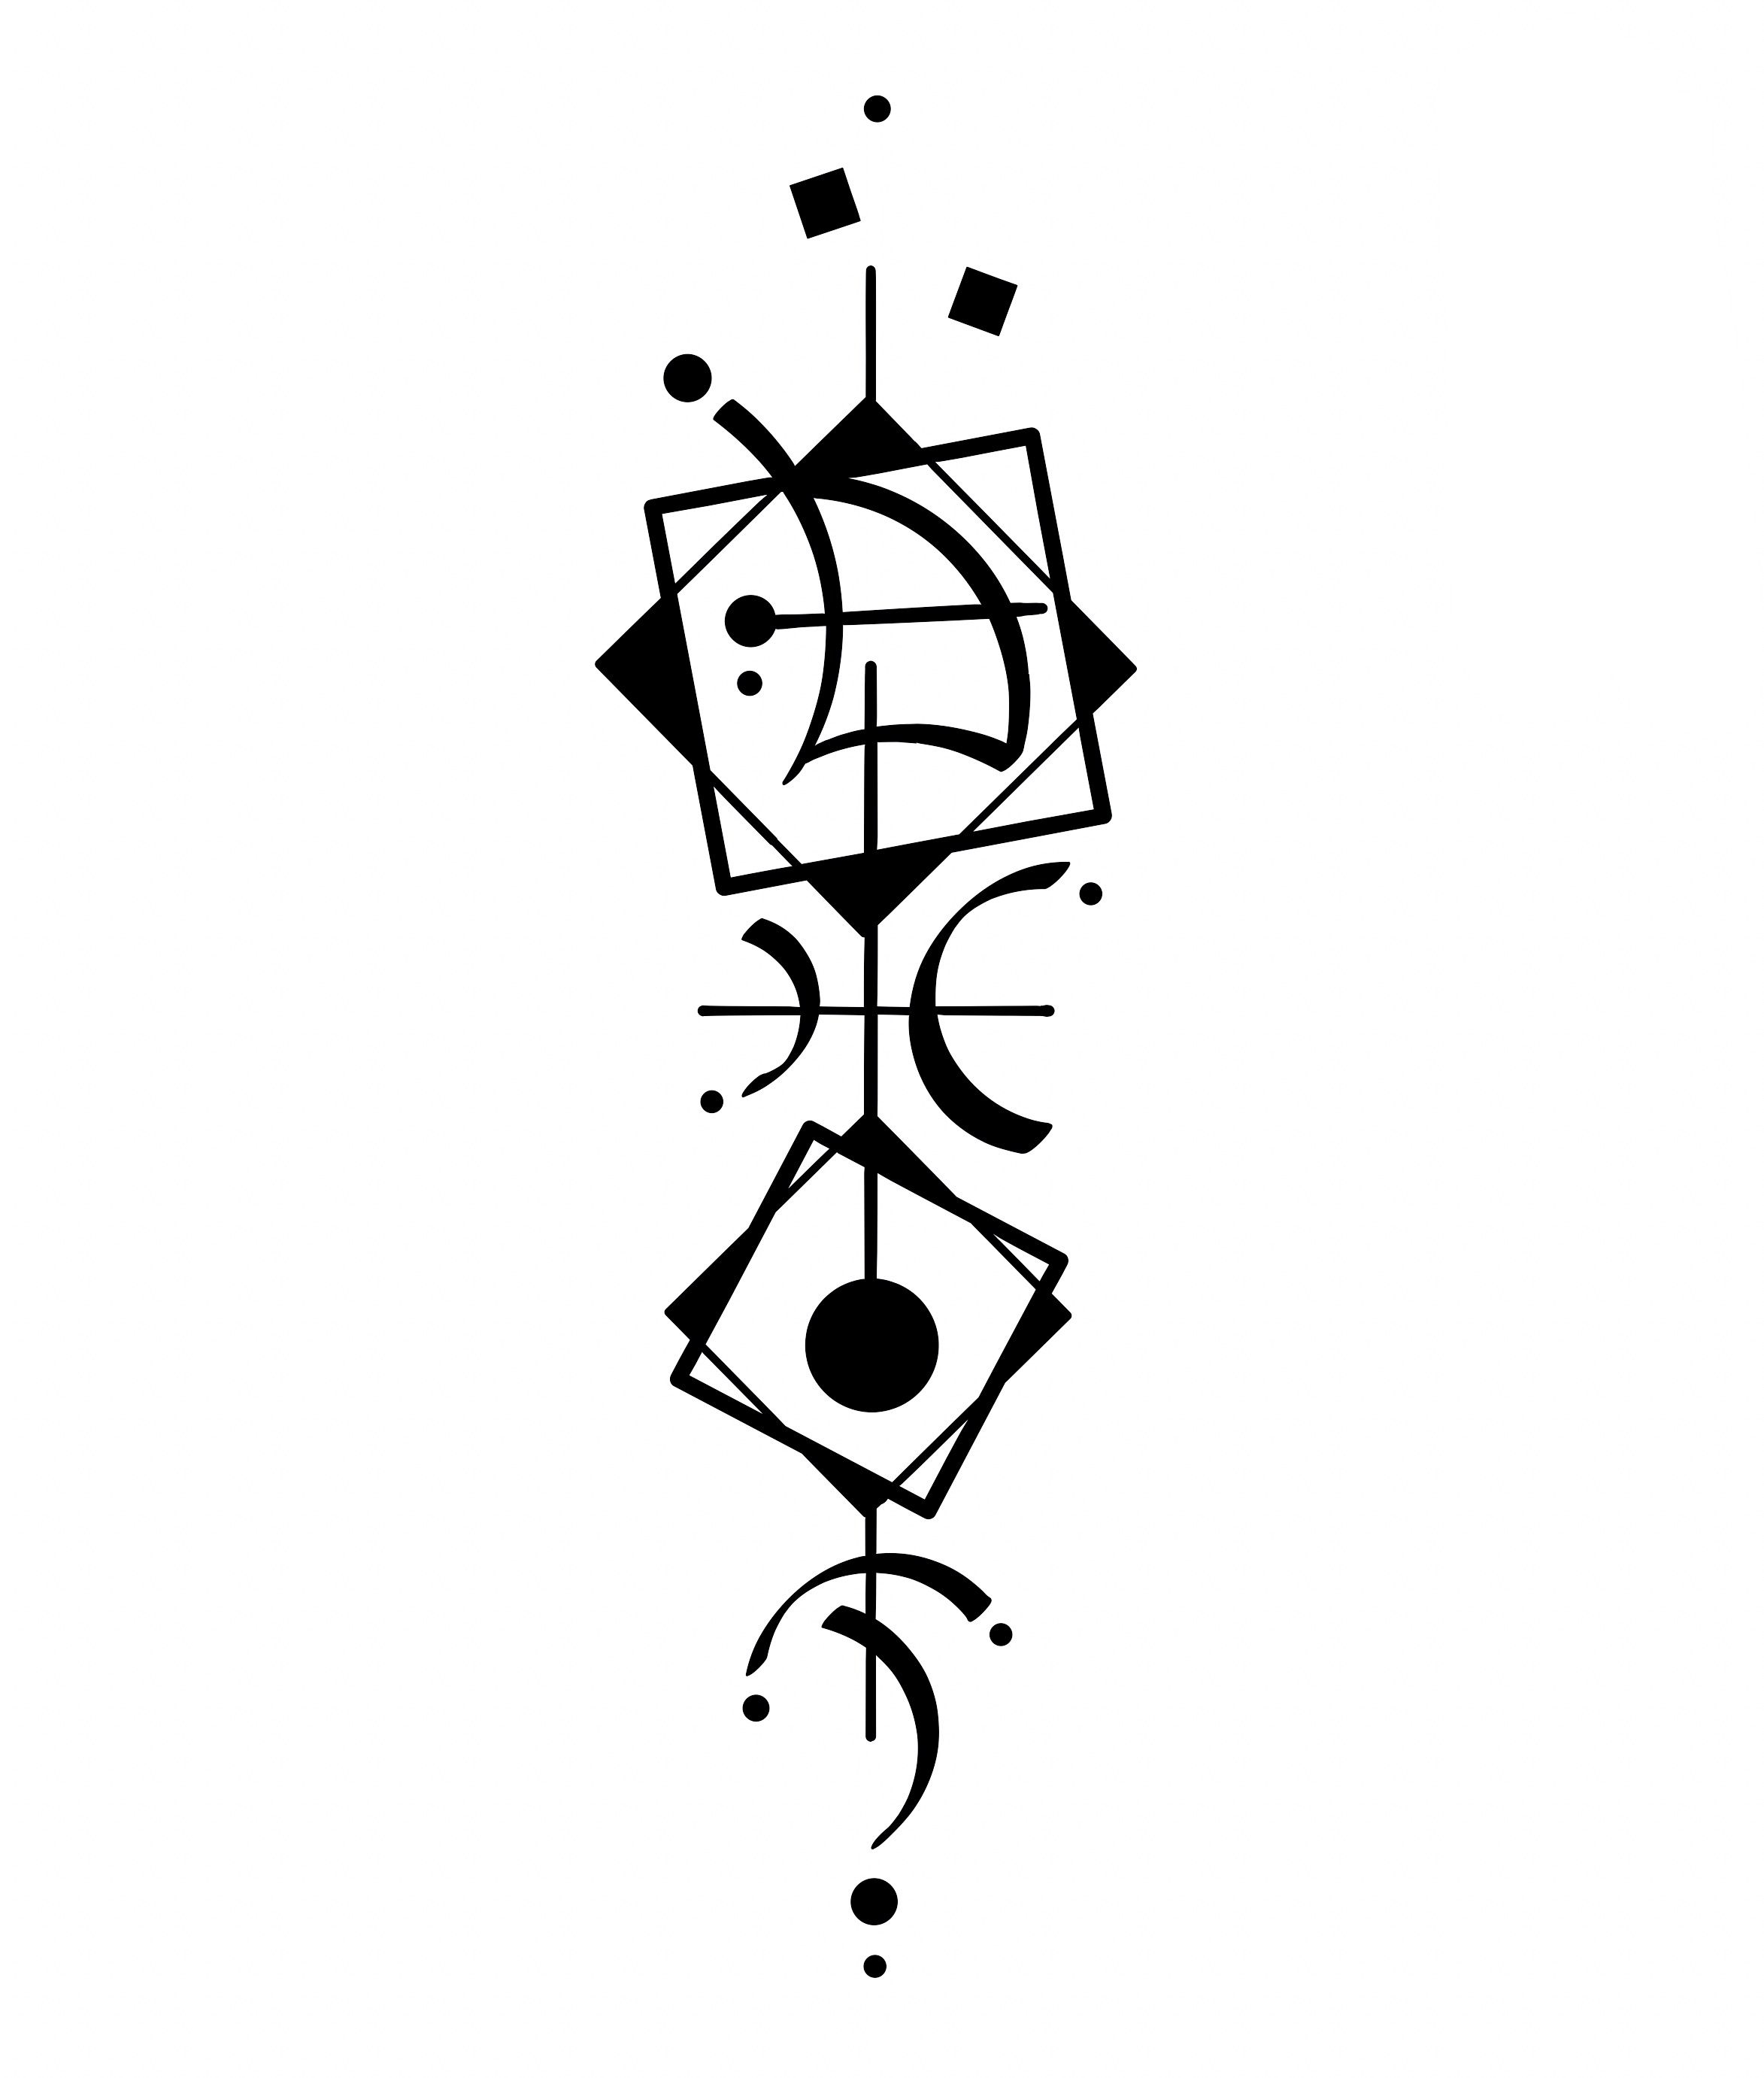 Pin by Kailash SHAH on Tattoo ideas in 2020 Symbol